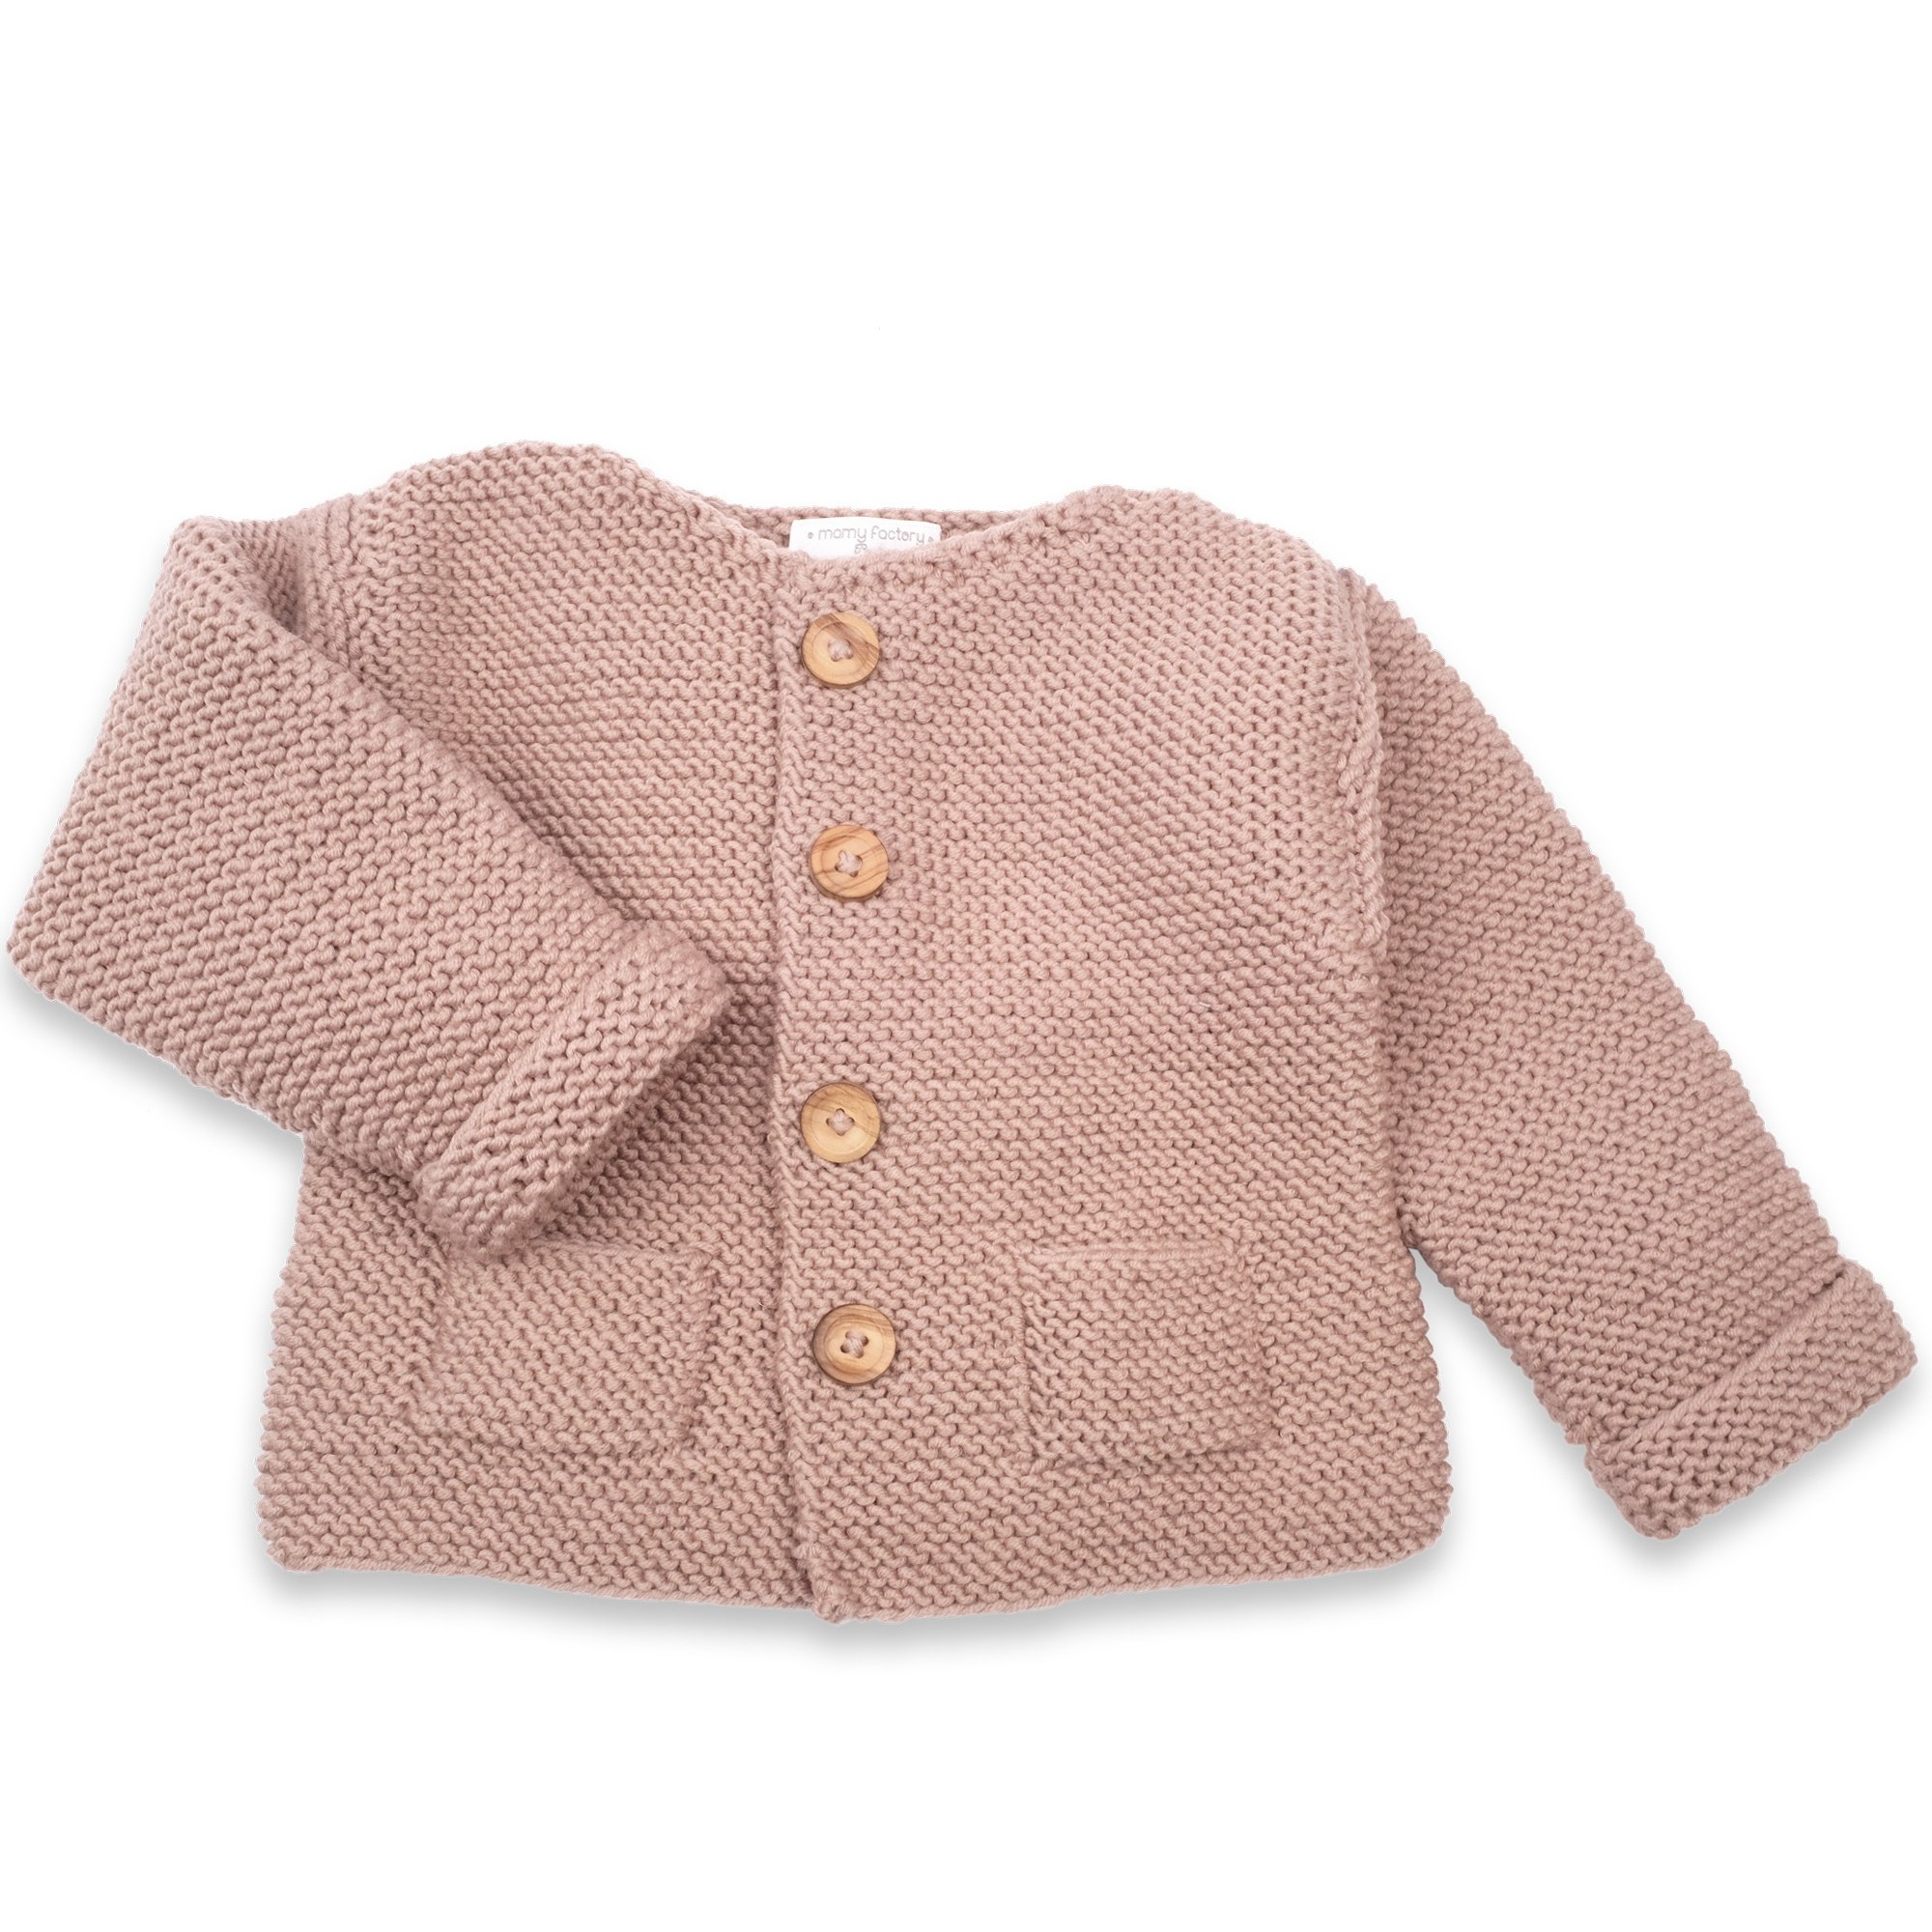 23052b40e Granny s knitwear - Taupe baby cardigan with two pockets at the ...